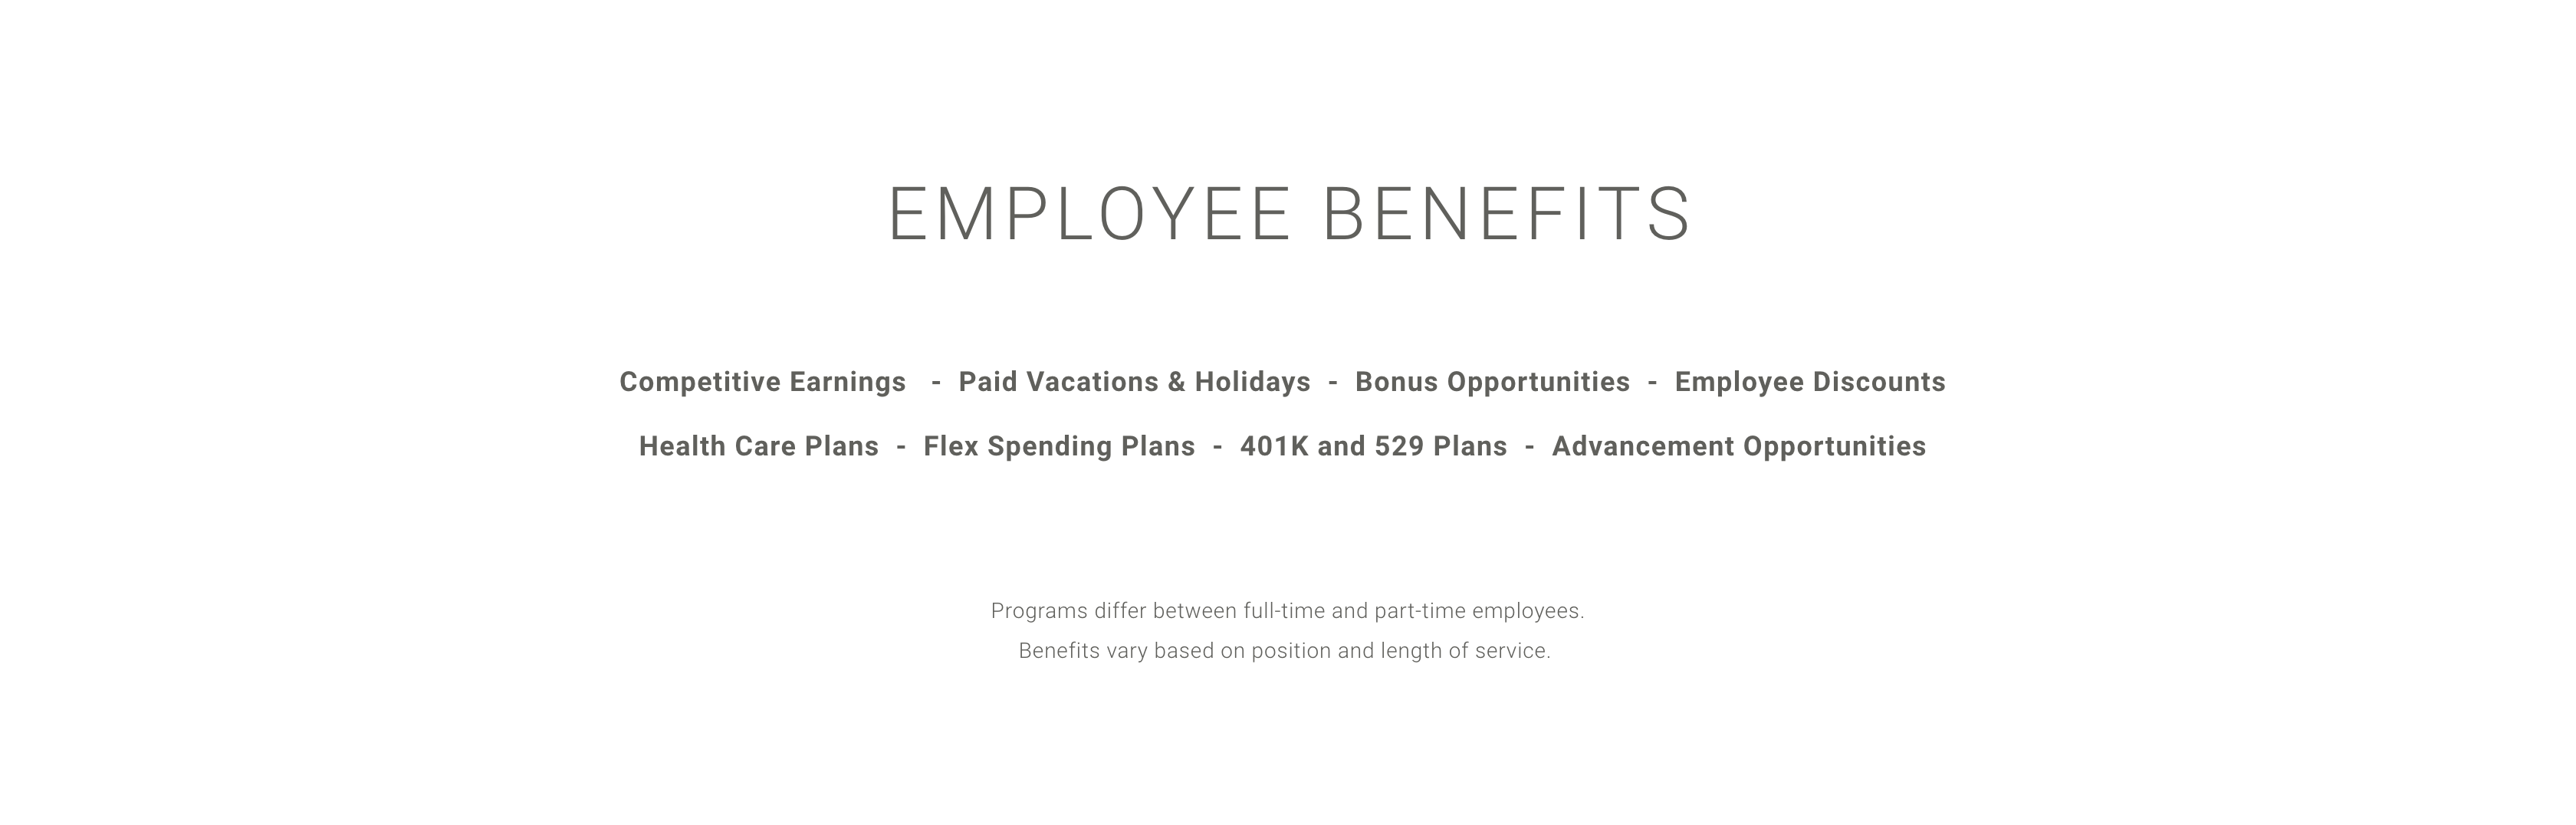 Arhaus Employee Benefits include competitive wages, paid vacations and holidays, bonus opportunities, healthcare, and 401k plans, plus advancement opportunities